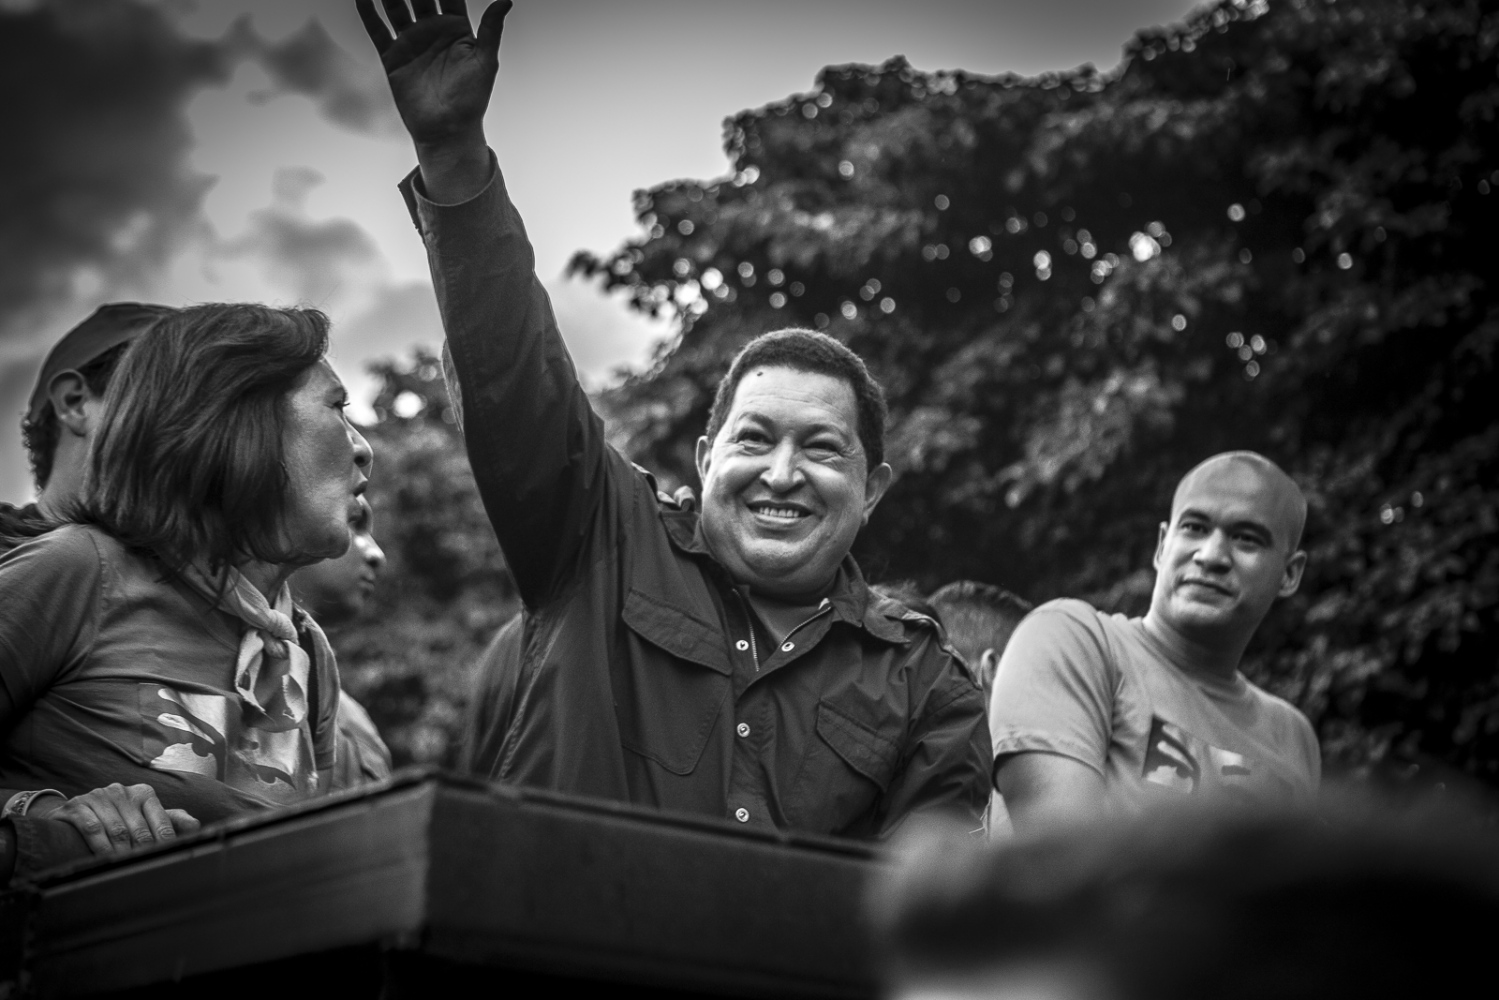 President Hugo Chávez during a campaign event for his re-election at Catia neighbourhood in Caracas, 17 th September 2012.  Chávez was running for a third term as President of Venezuela, while he was fighting cancer. He won the election with 55% of the votes.